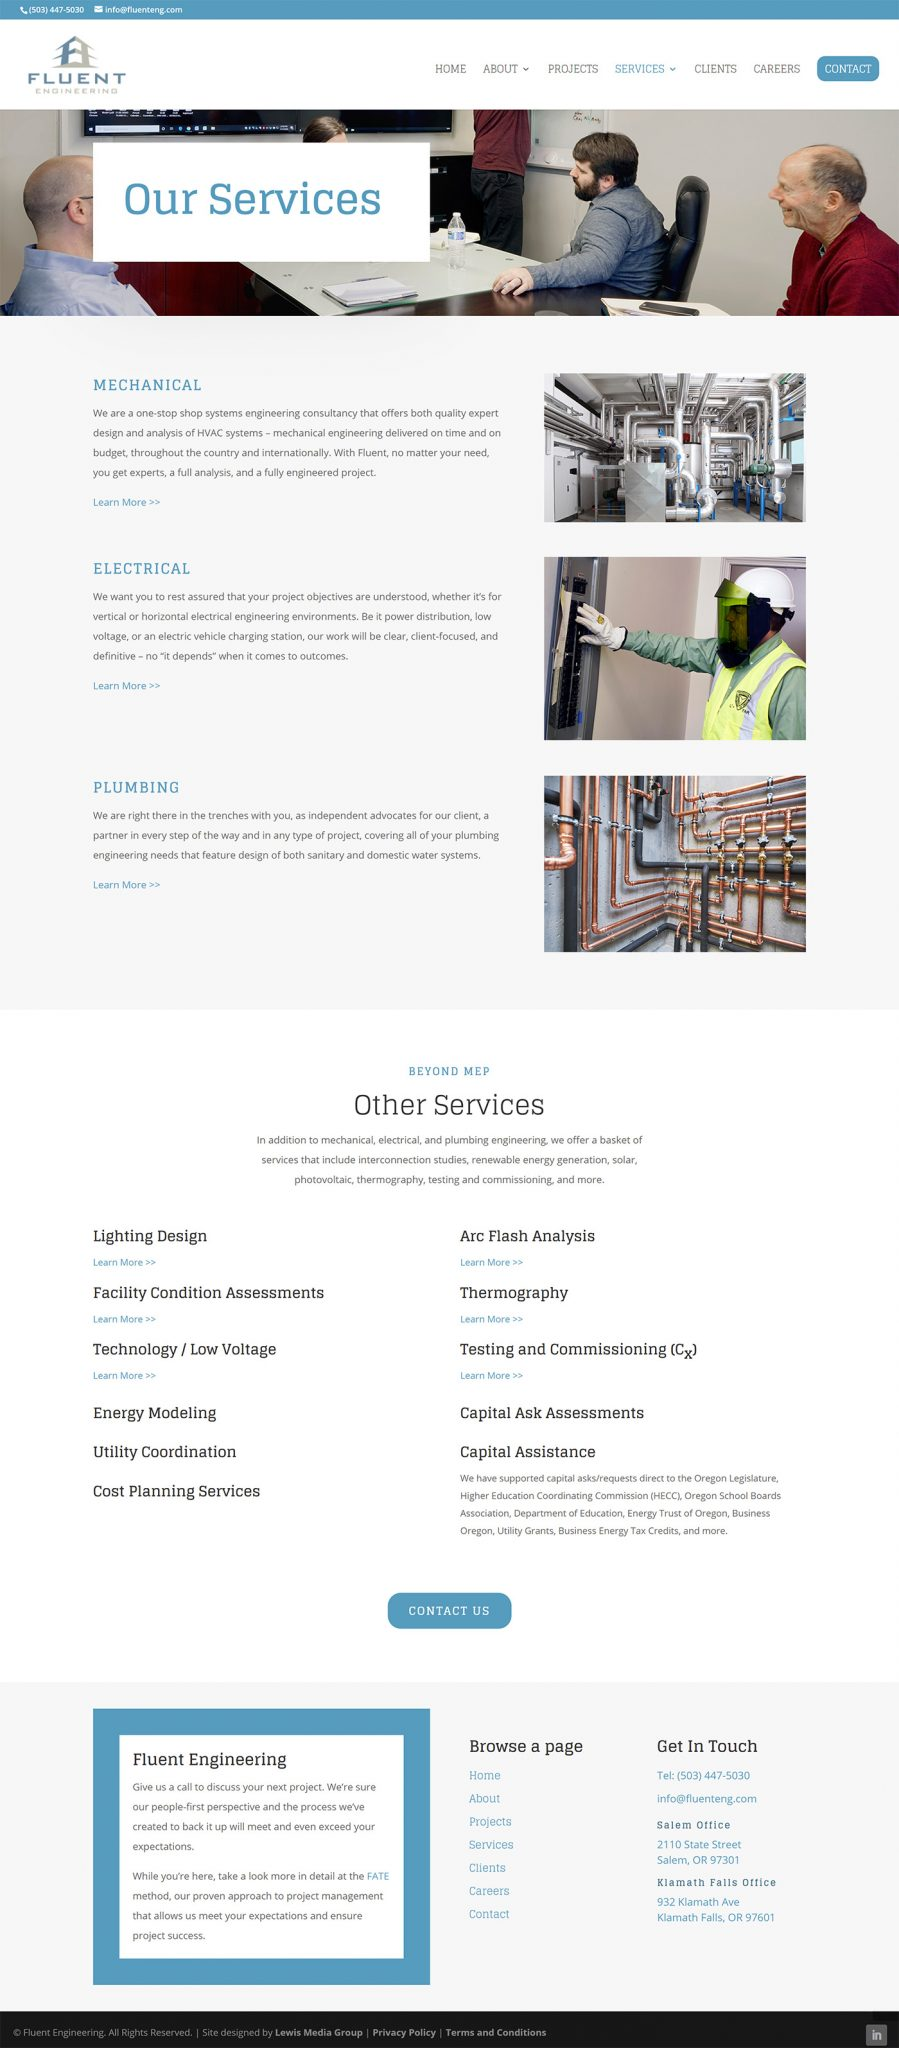 Fluent Engineering Services page screenshot after redesign work